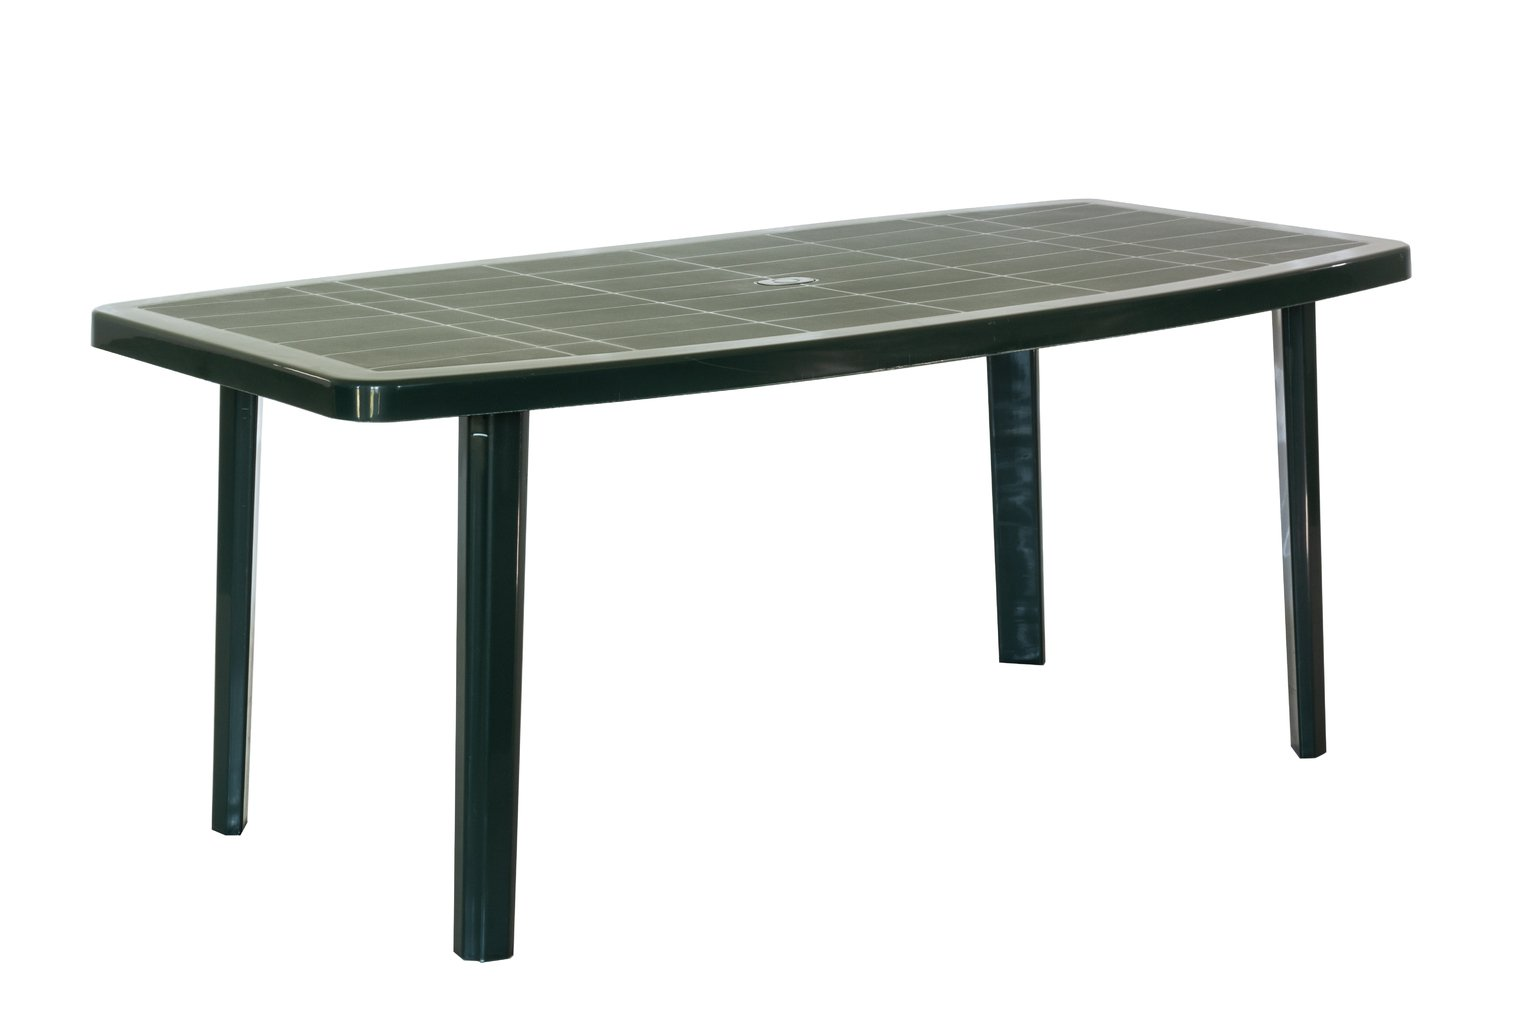 Argos Home Oval 8 Seater Garden Table - Green